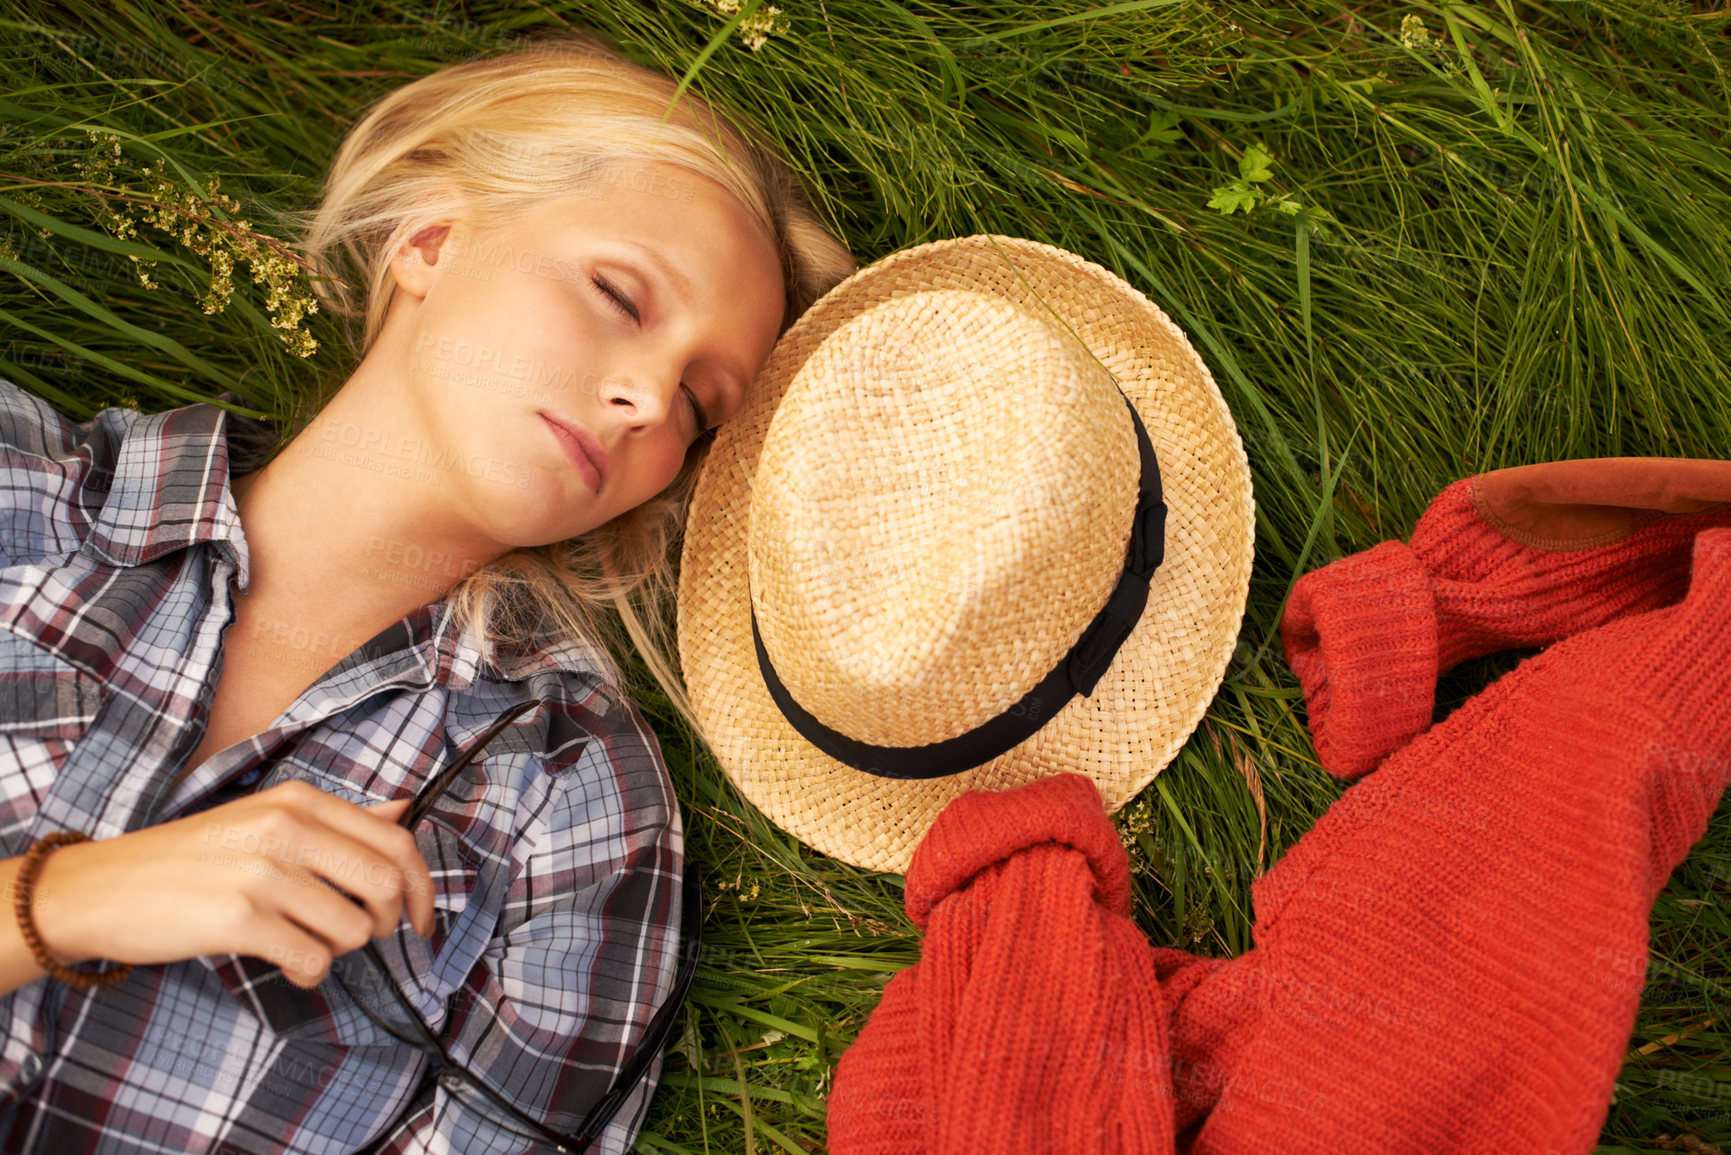 Buy stock photo Beautiful young blonde woman asleep in a field with her hat and coat alongside